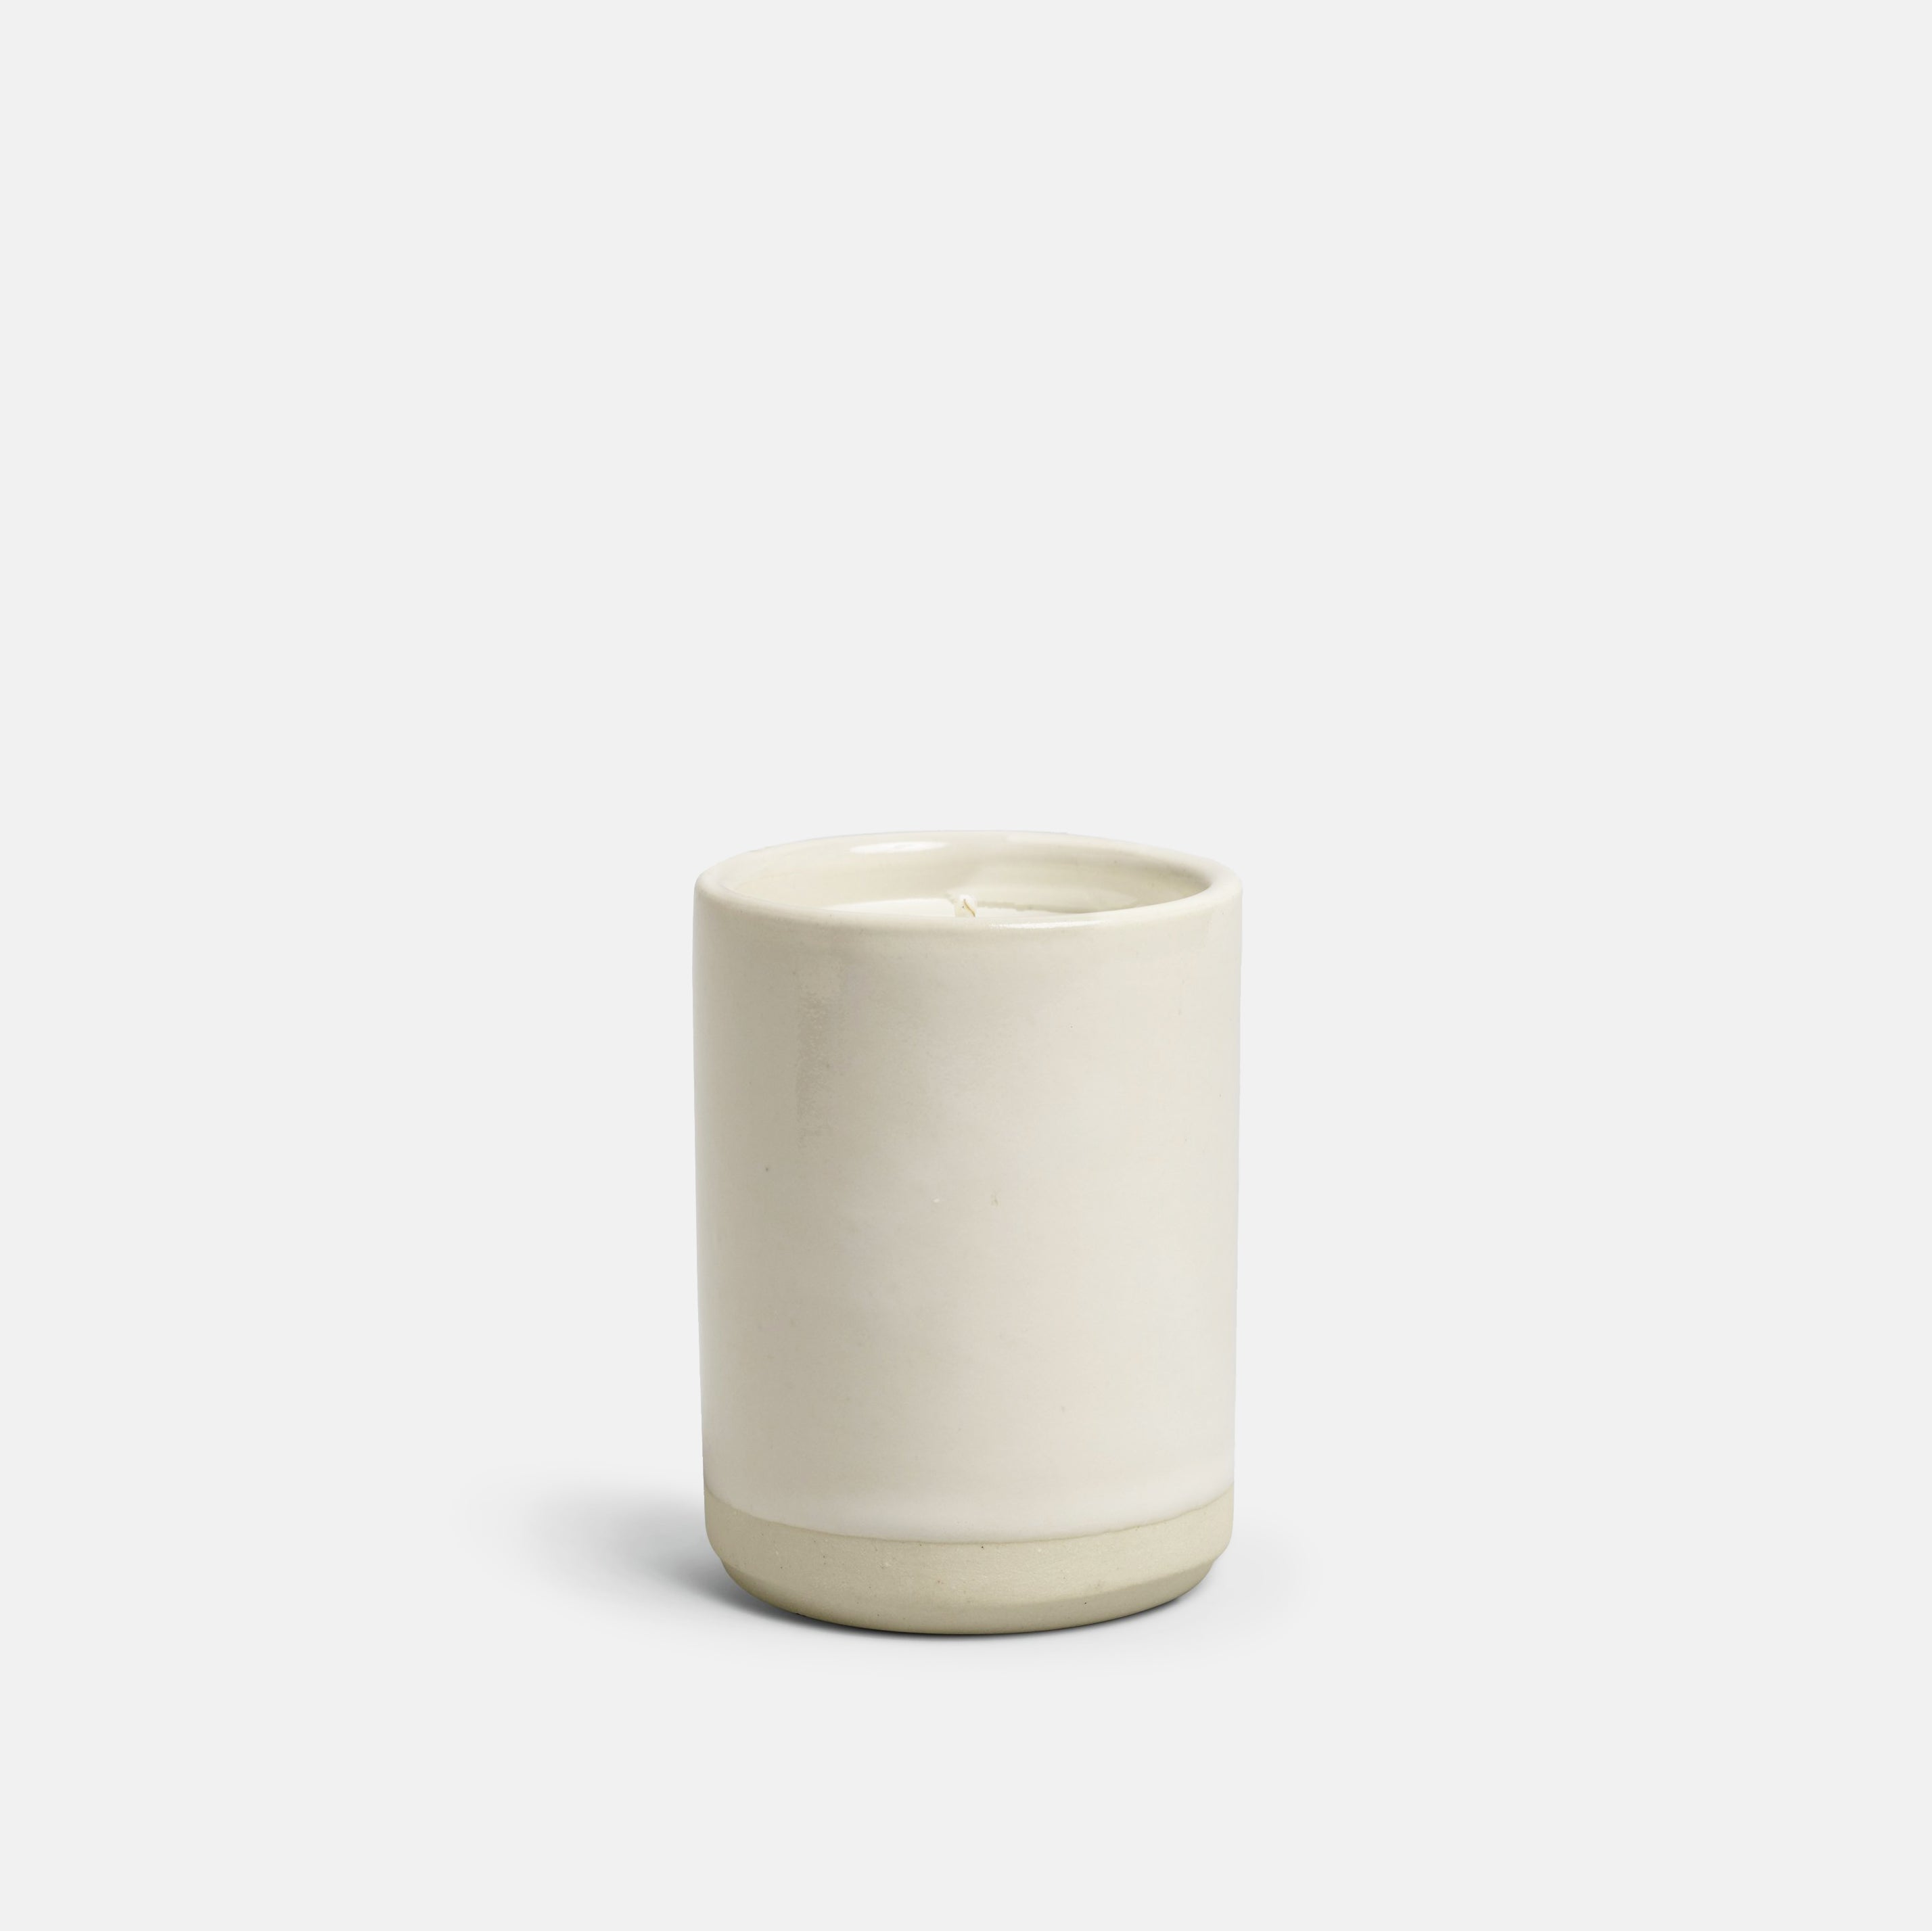 Idyllwild Ceramic Candle